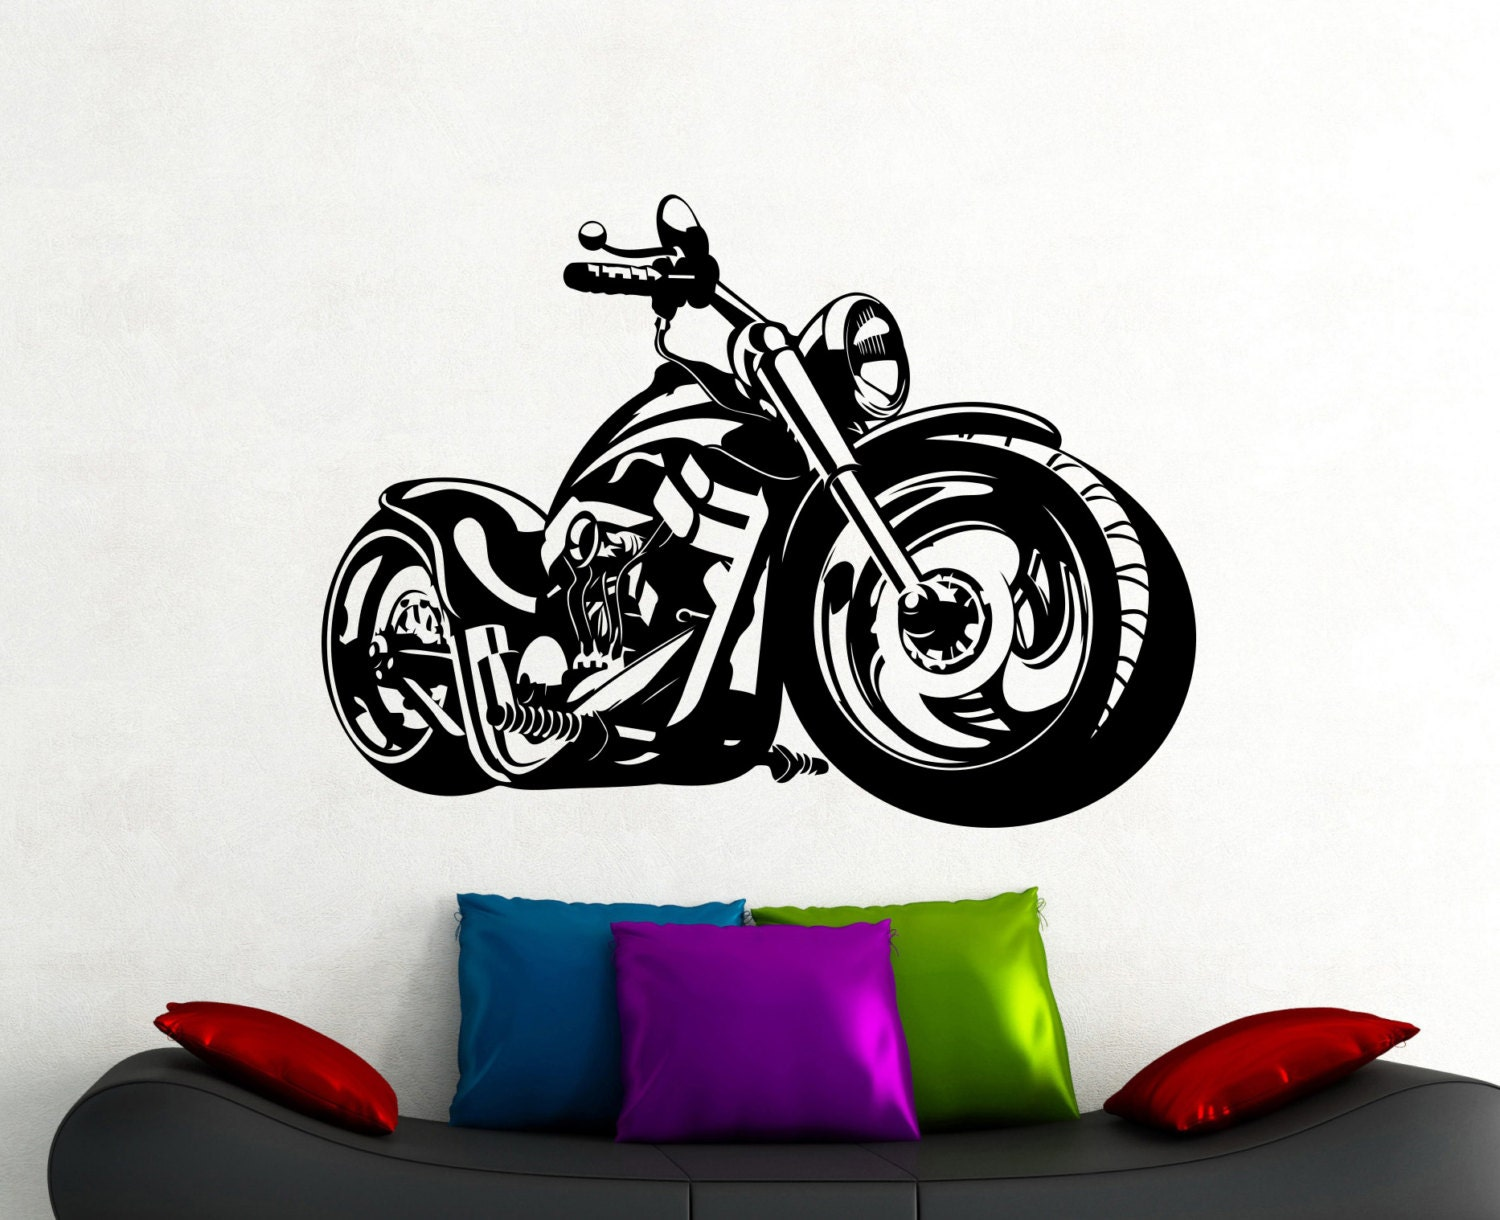 bike wall sticker motorcycle decals home interior design room